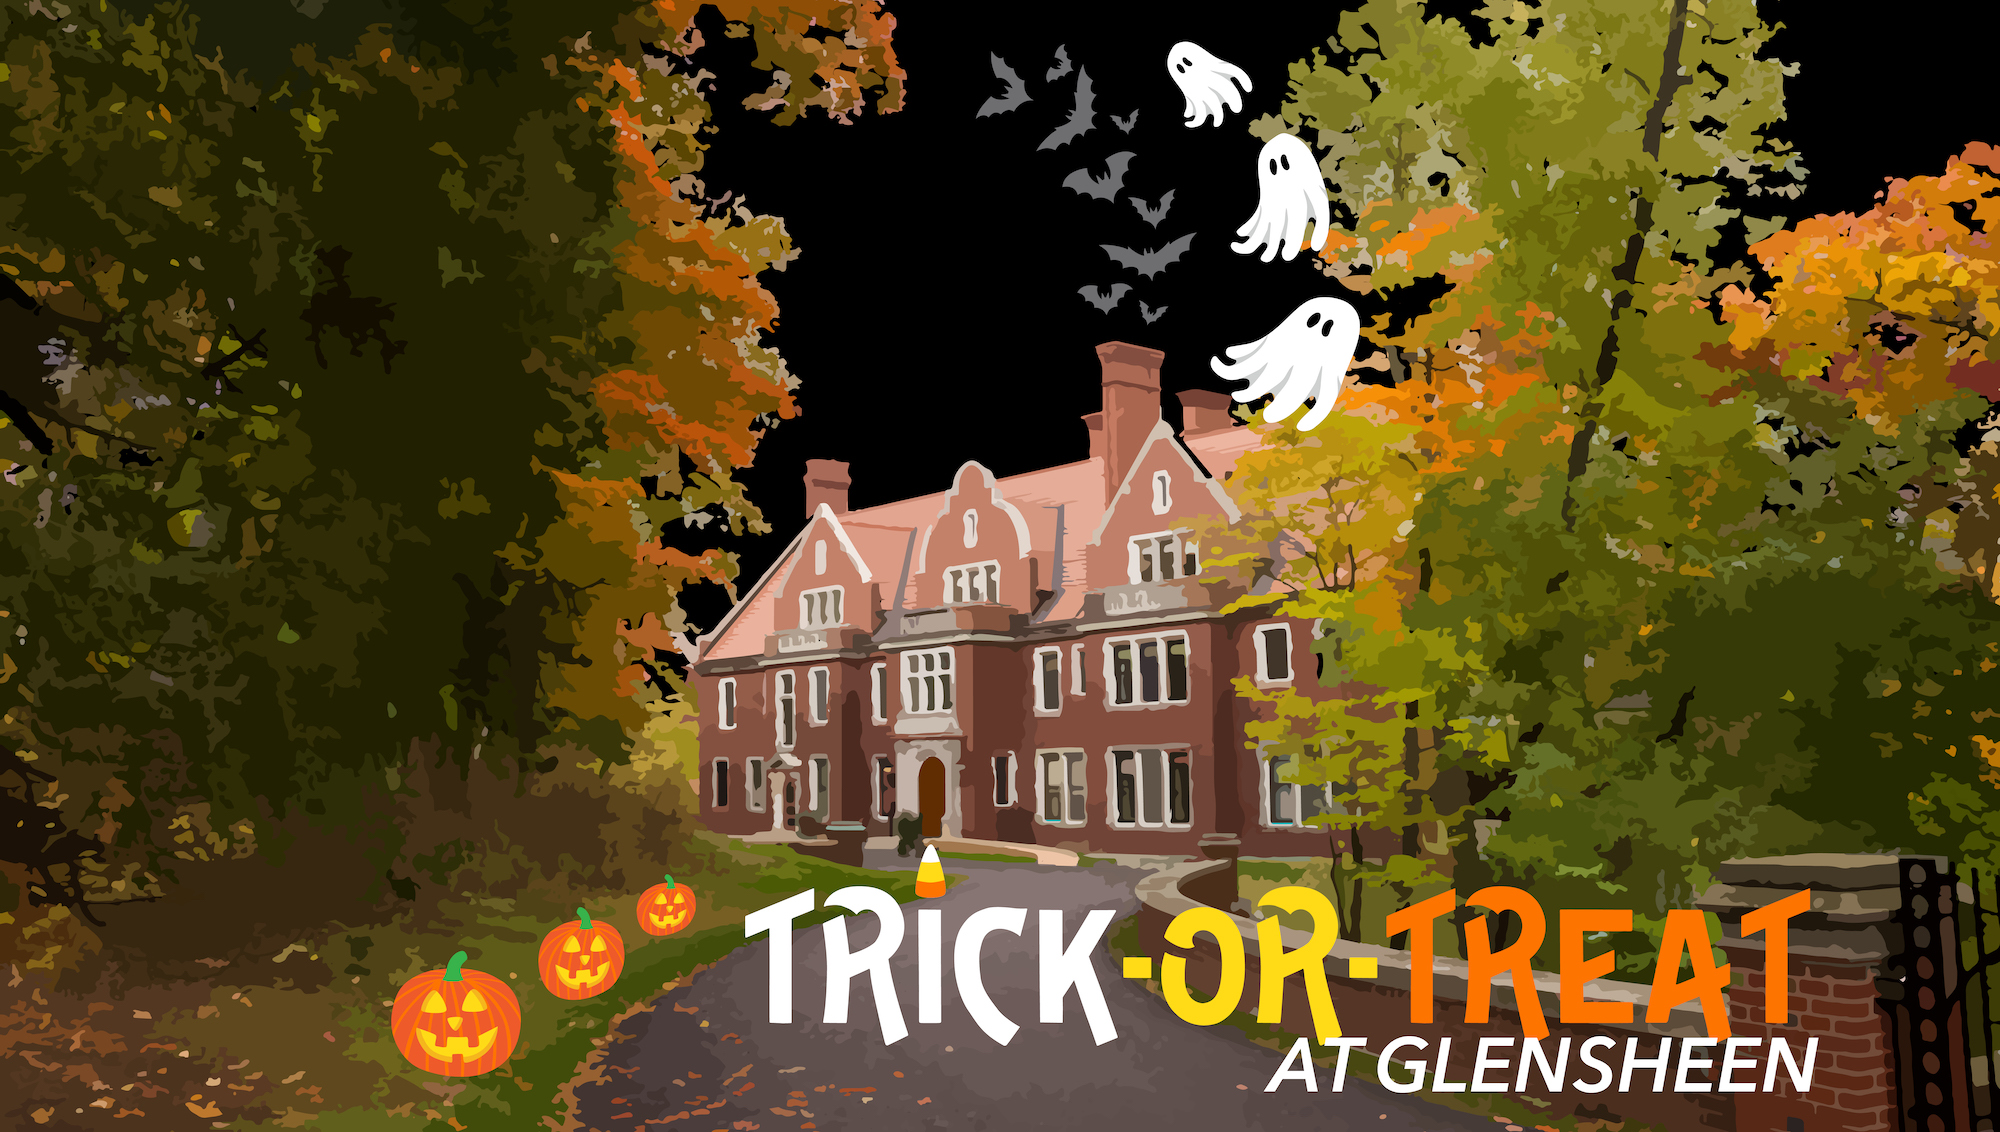 Trick-Or-Treating at Glensheen Mansion with illustrated ghosts and pumpkin graphics